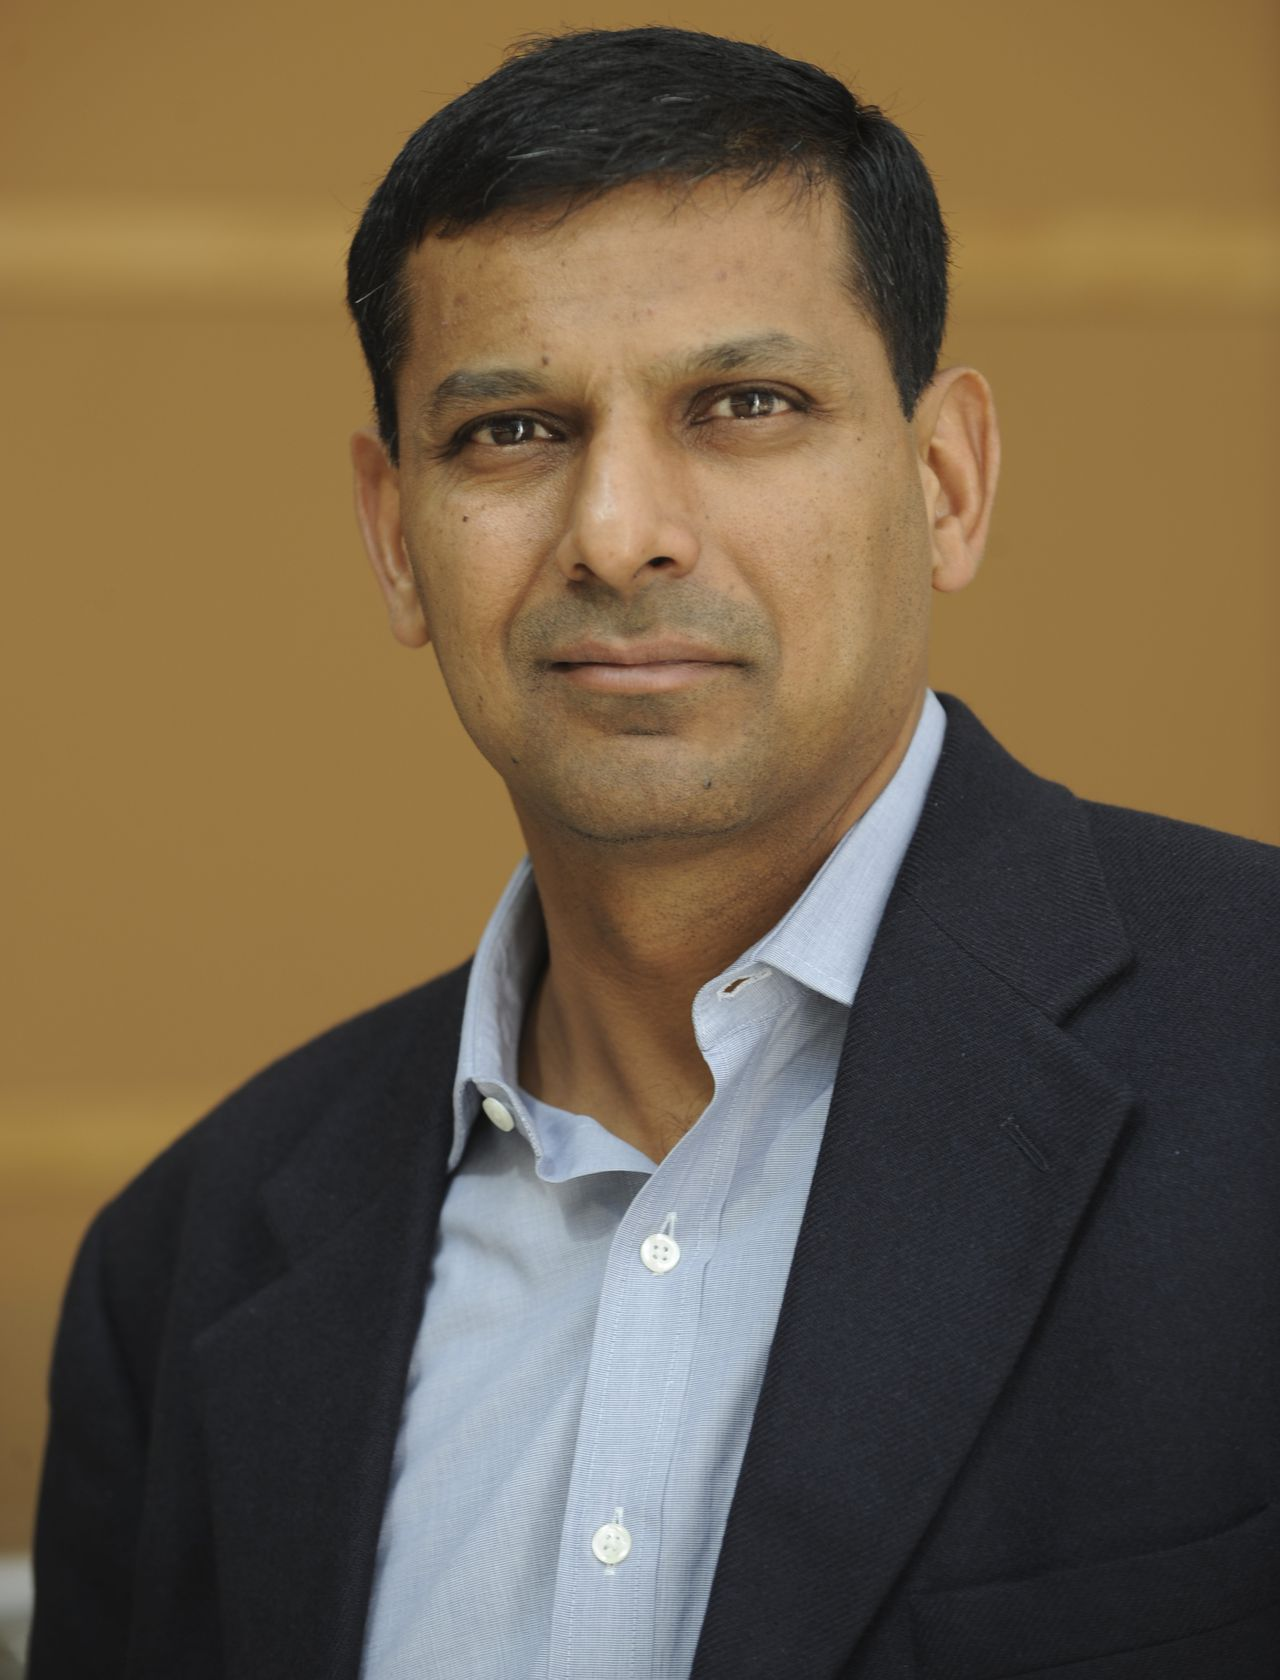 """Economist Raghuram G. Rajan poses at an undisclosed location on Sept. 1, 2009. """"Fault Lines: How Hidden Fractures Still Threaten the World Economy"""" is the latest book by Rajan. Source: Princeton University Press via Bloomberg EDITOR'S NOTE: NO SALES. EDITORIAL USE WITH PREVIEW/REVIEW OF BOOK ONLY."""